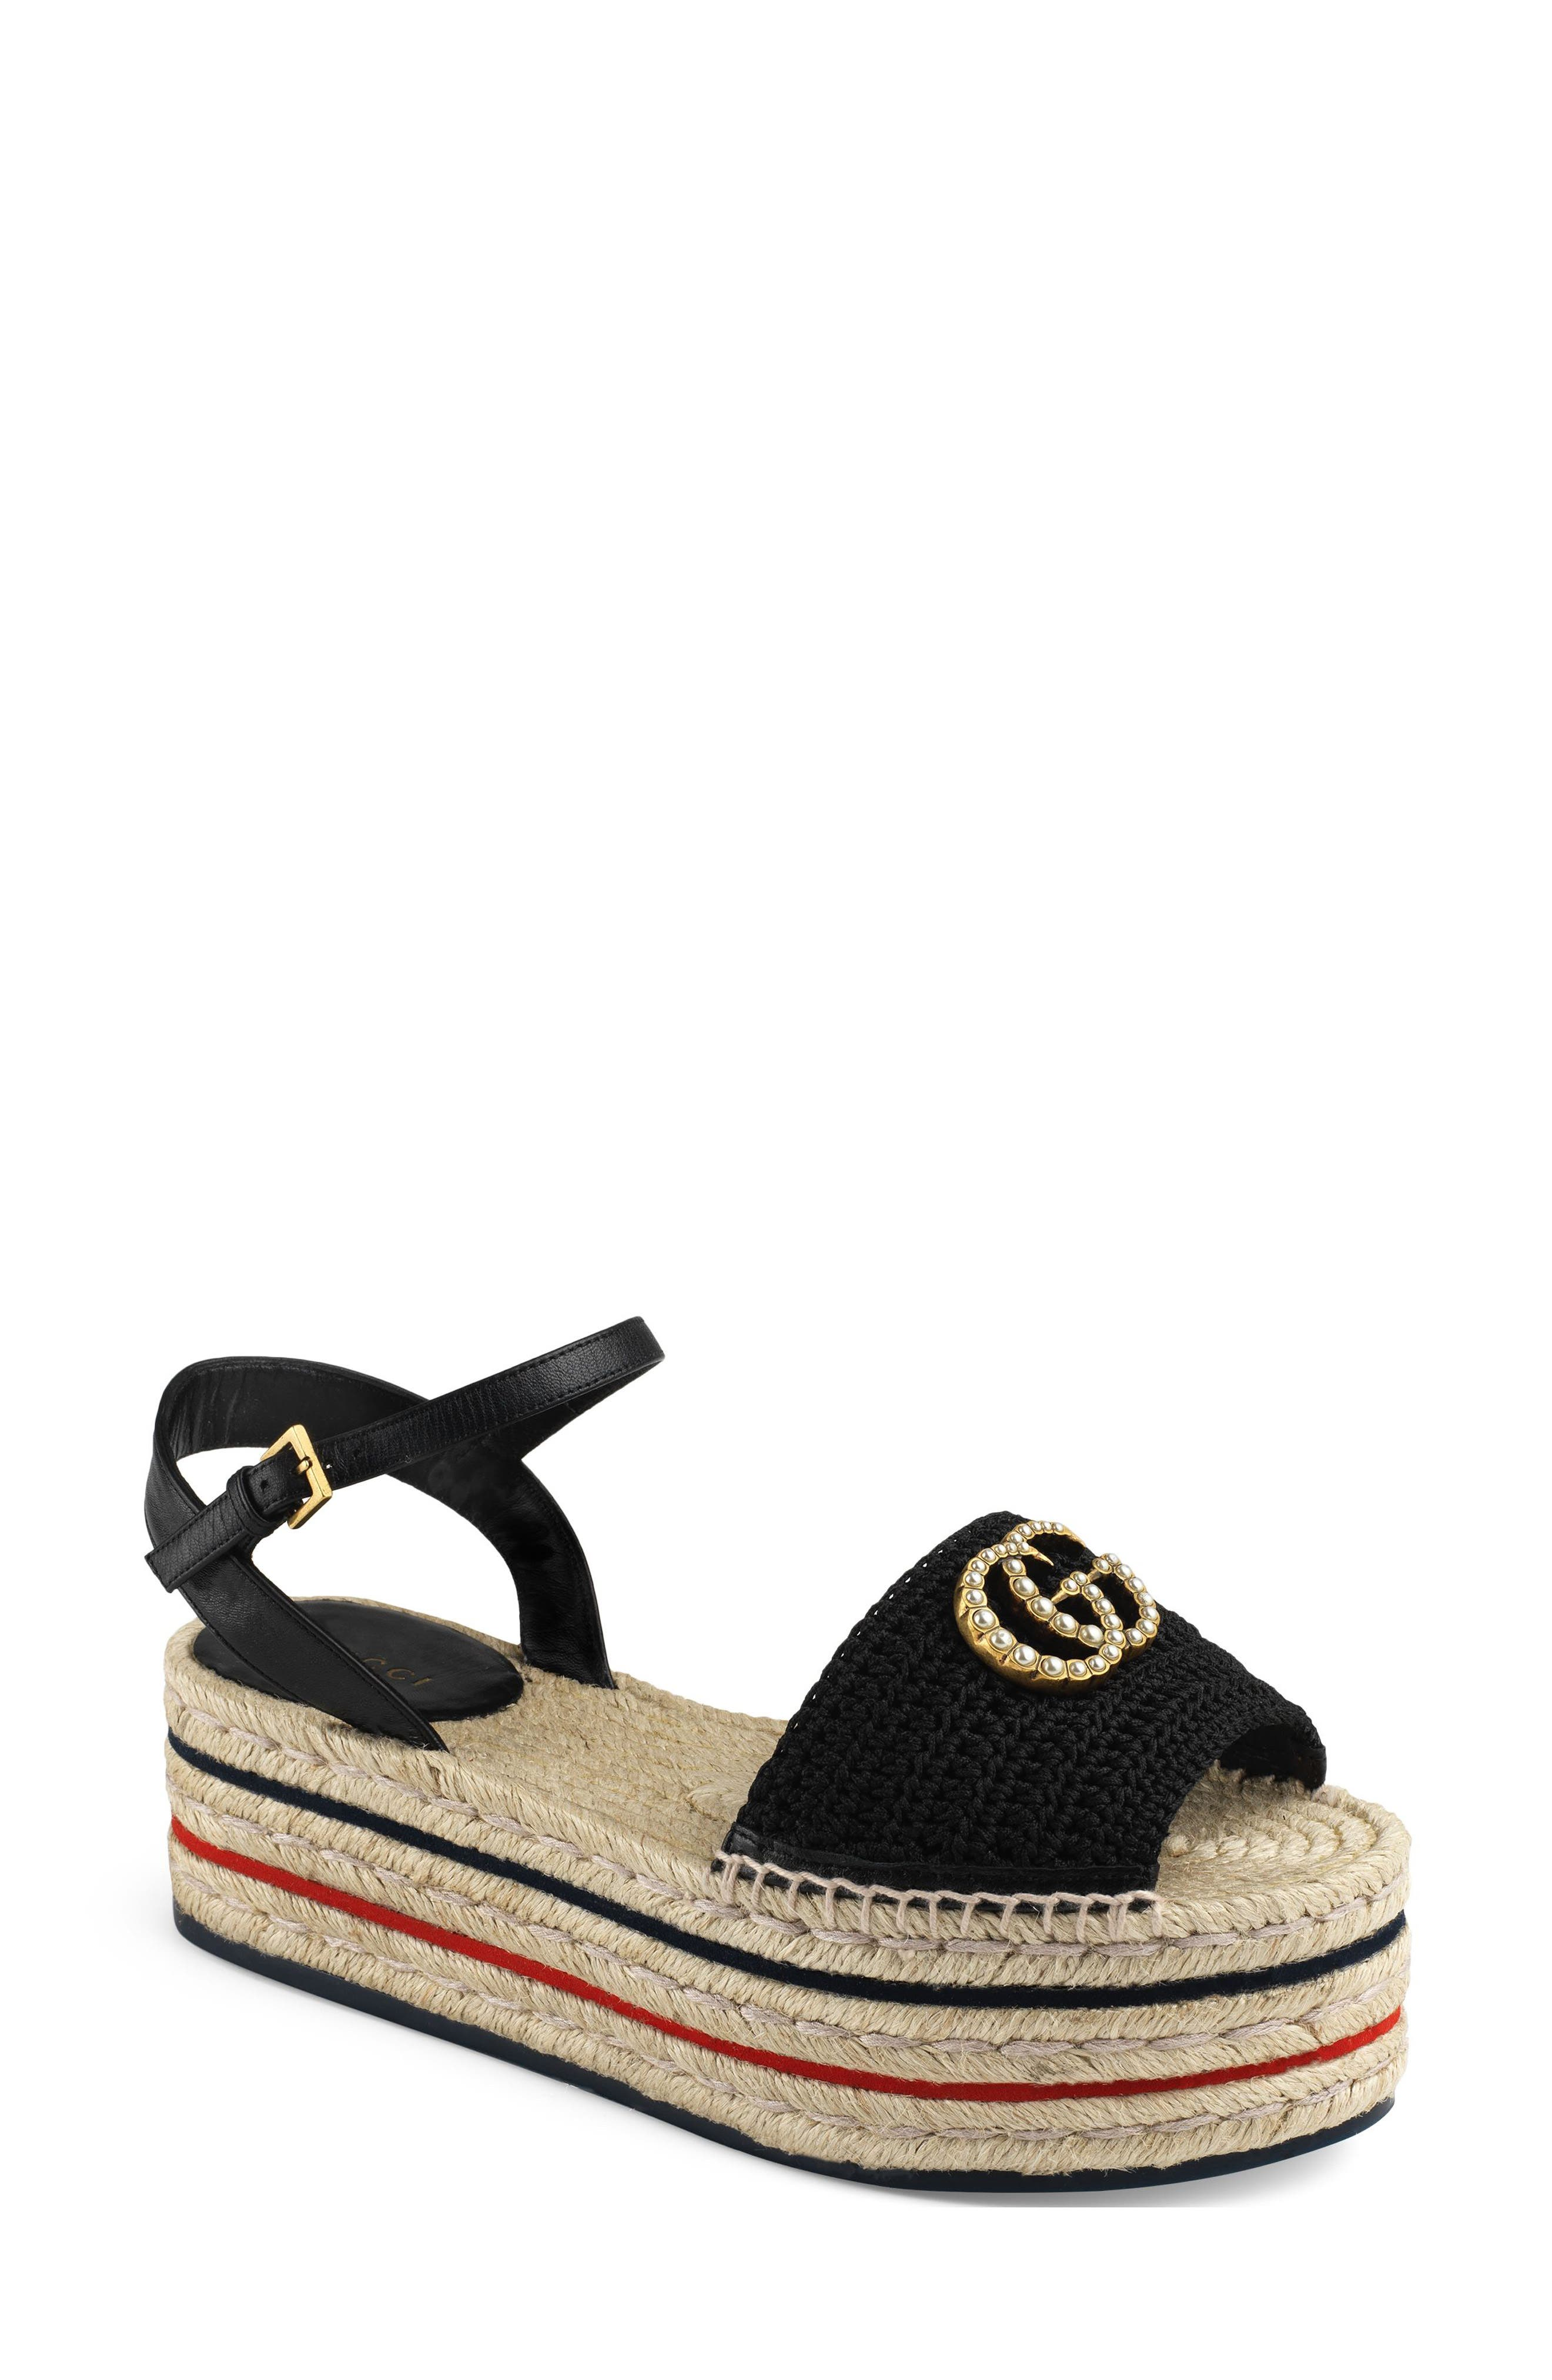 An espadrille-inspired sandal with classic navy and red stripes circling the flatform sole features faux pearl-embellished double-G hardware at the knit vamp. Style Name: Gucci Lilibeth Gg Platform Espadrille Sandal (Women). Style Number: 5738475. Available in stores.